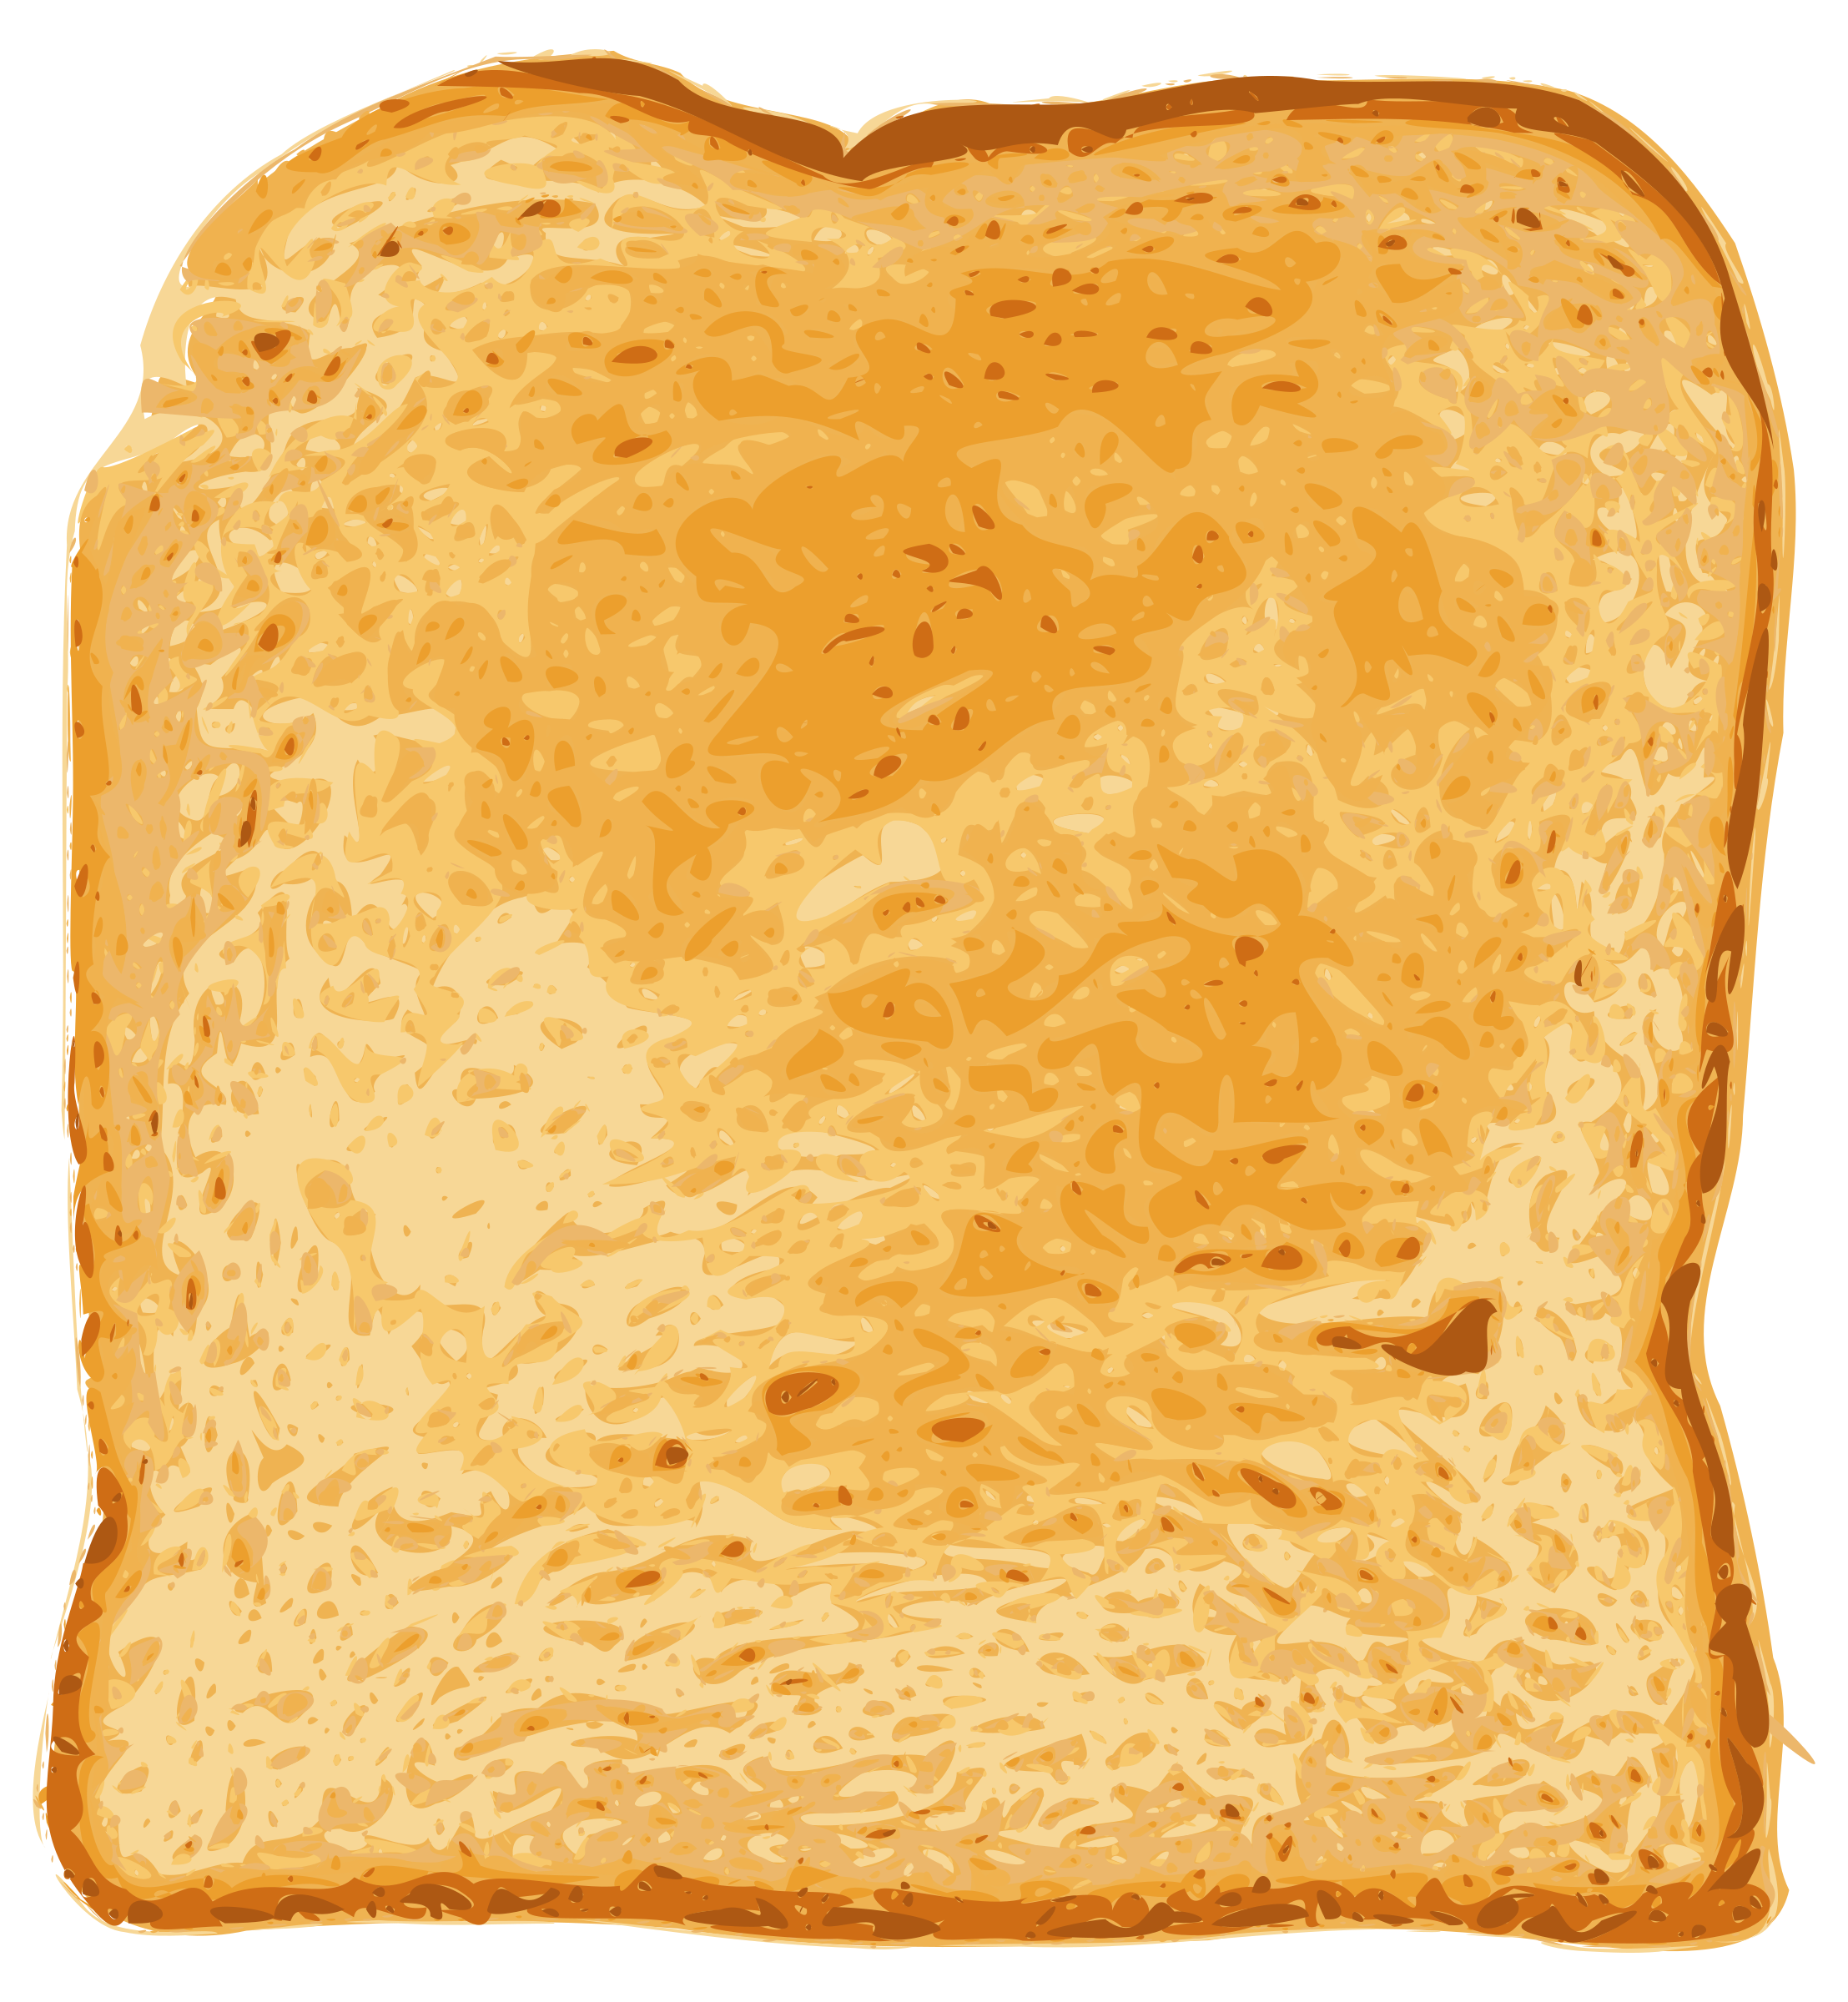 Toast Clipart Free.